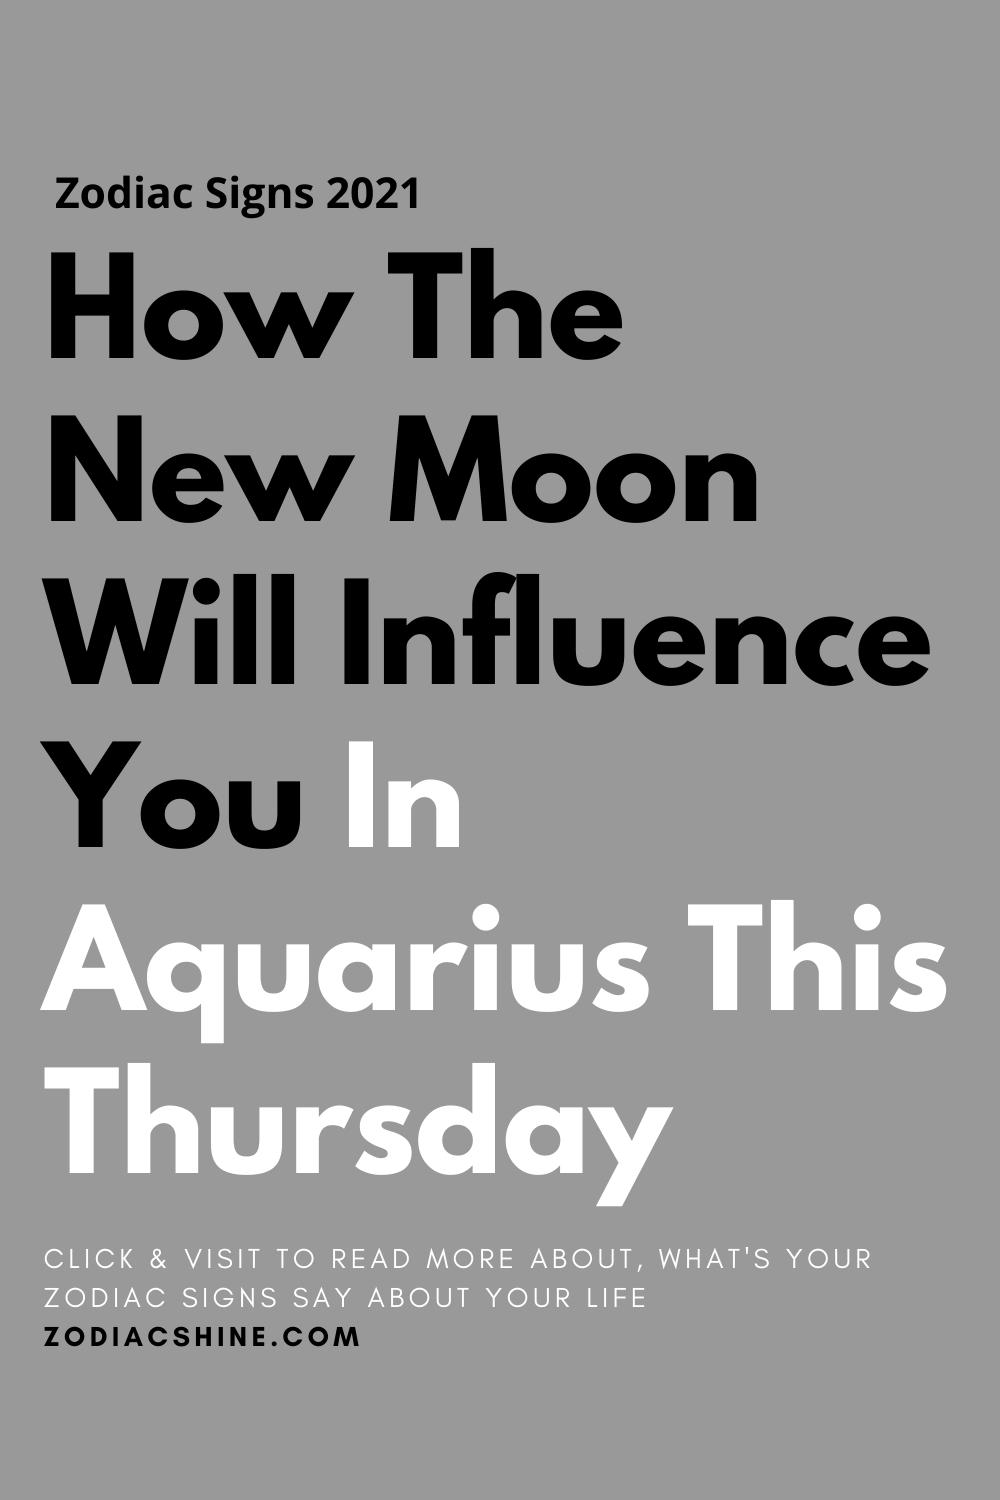 How The New Moon Will Influence You In Aquarius This Thursday